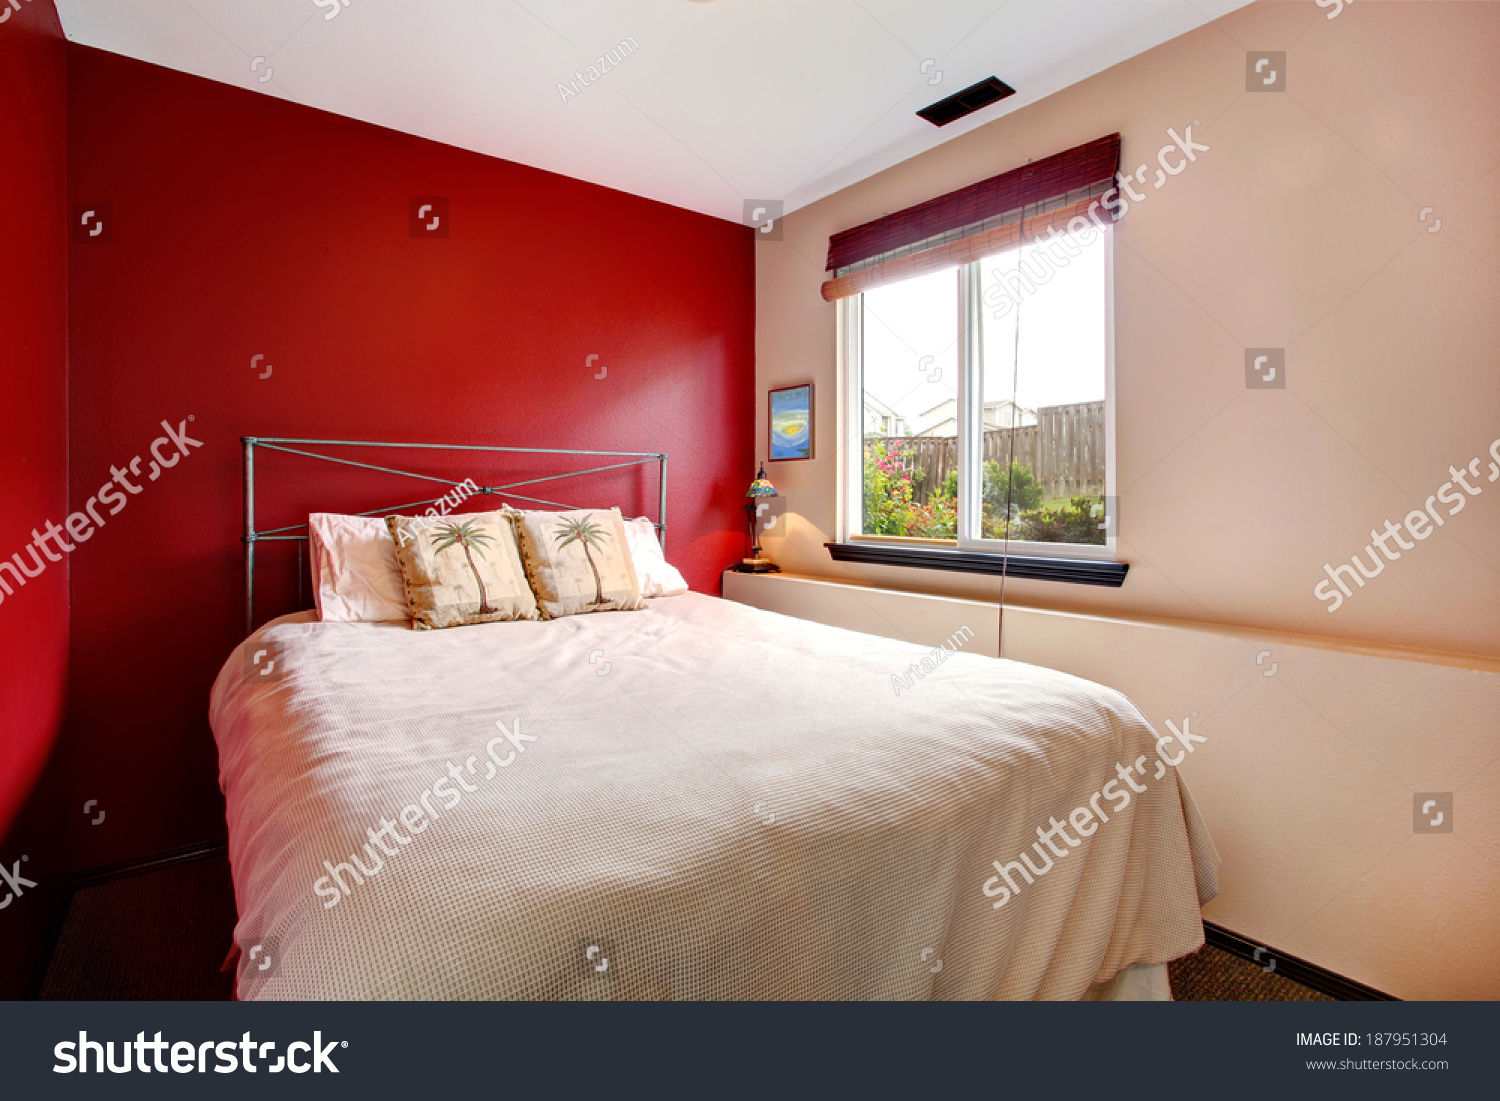 Small Bedroom Red Cream Wall Iron Stock Photo Edit Now 187951304